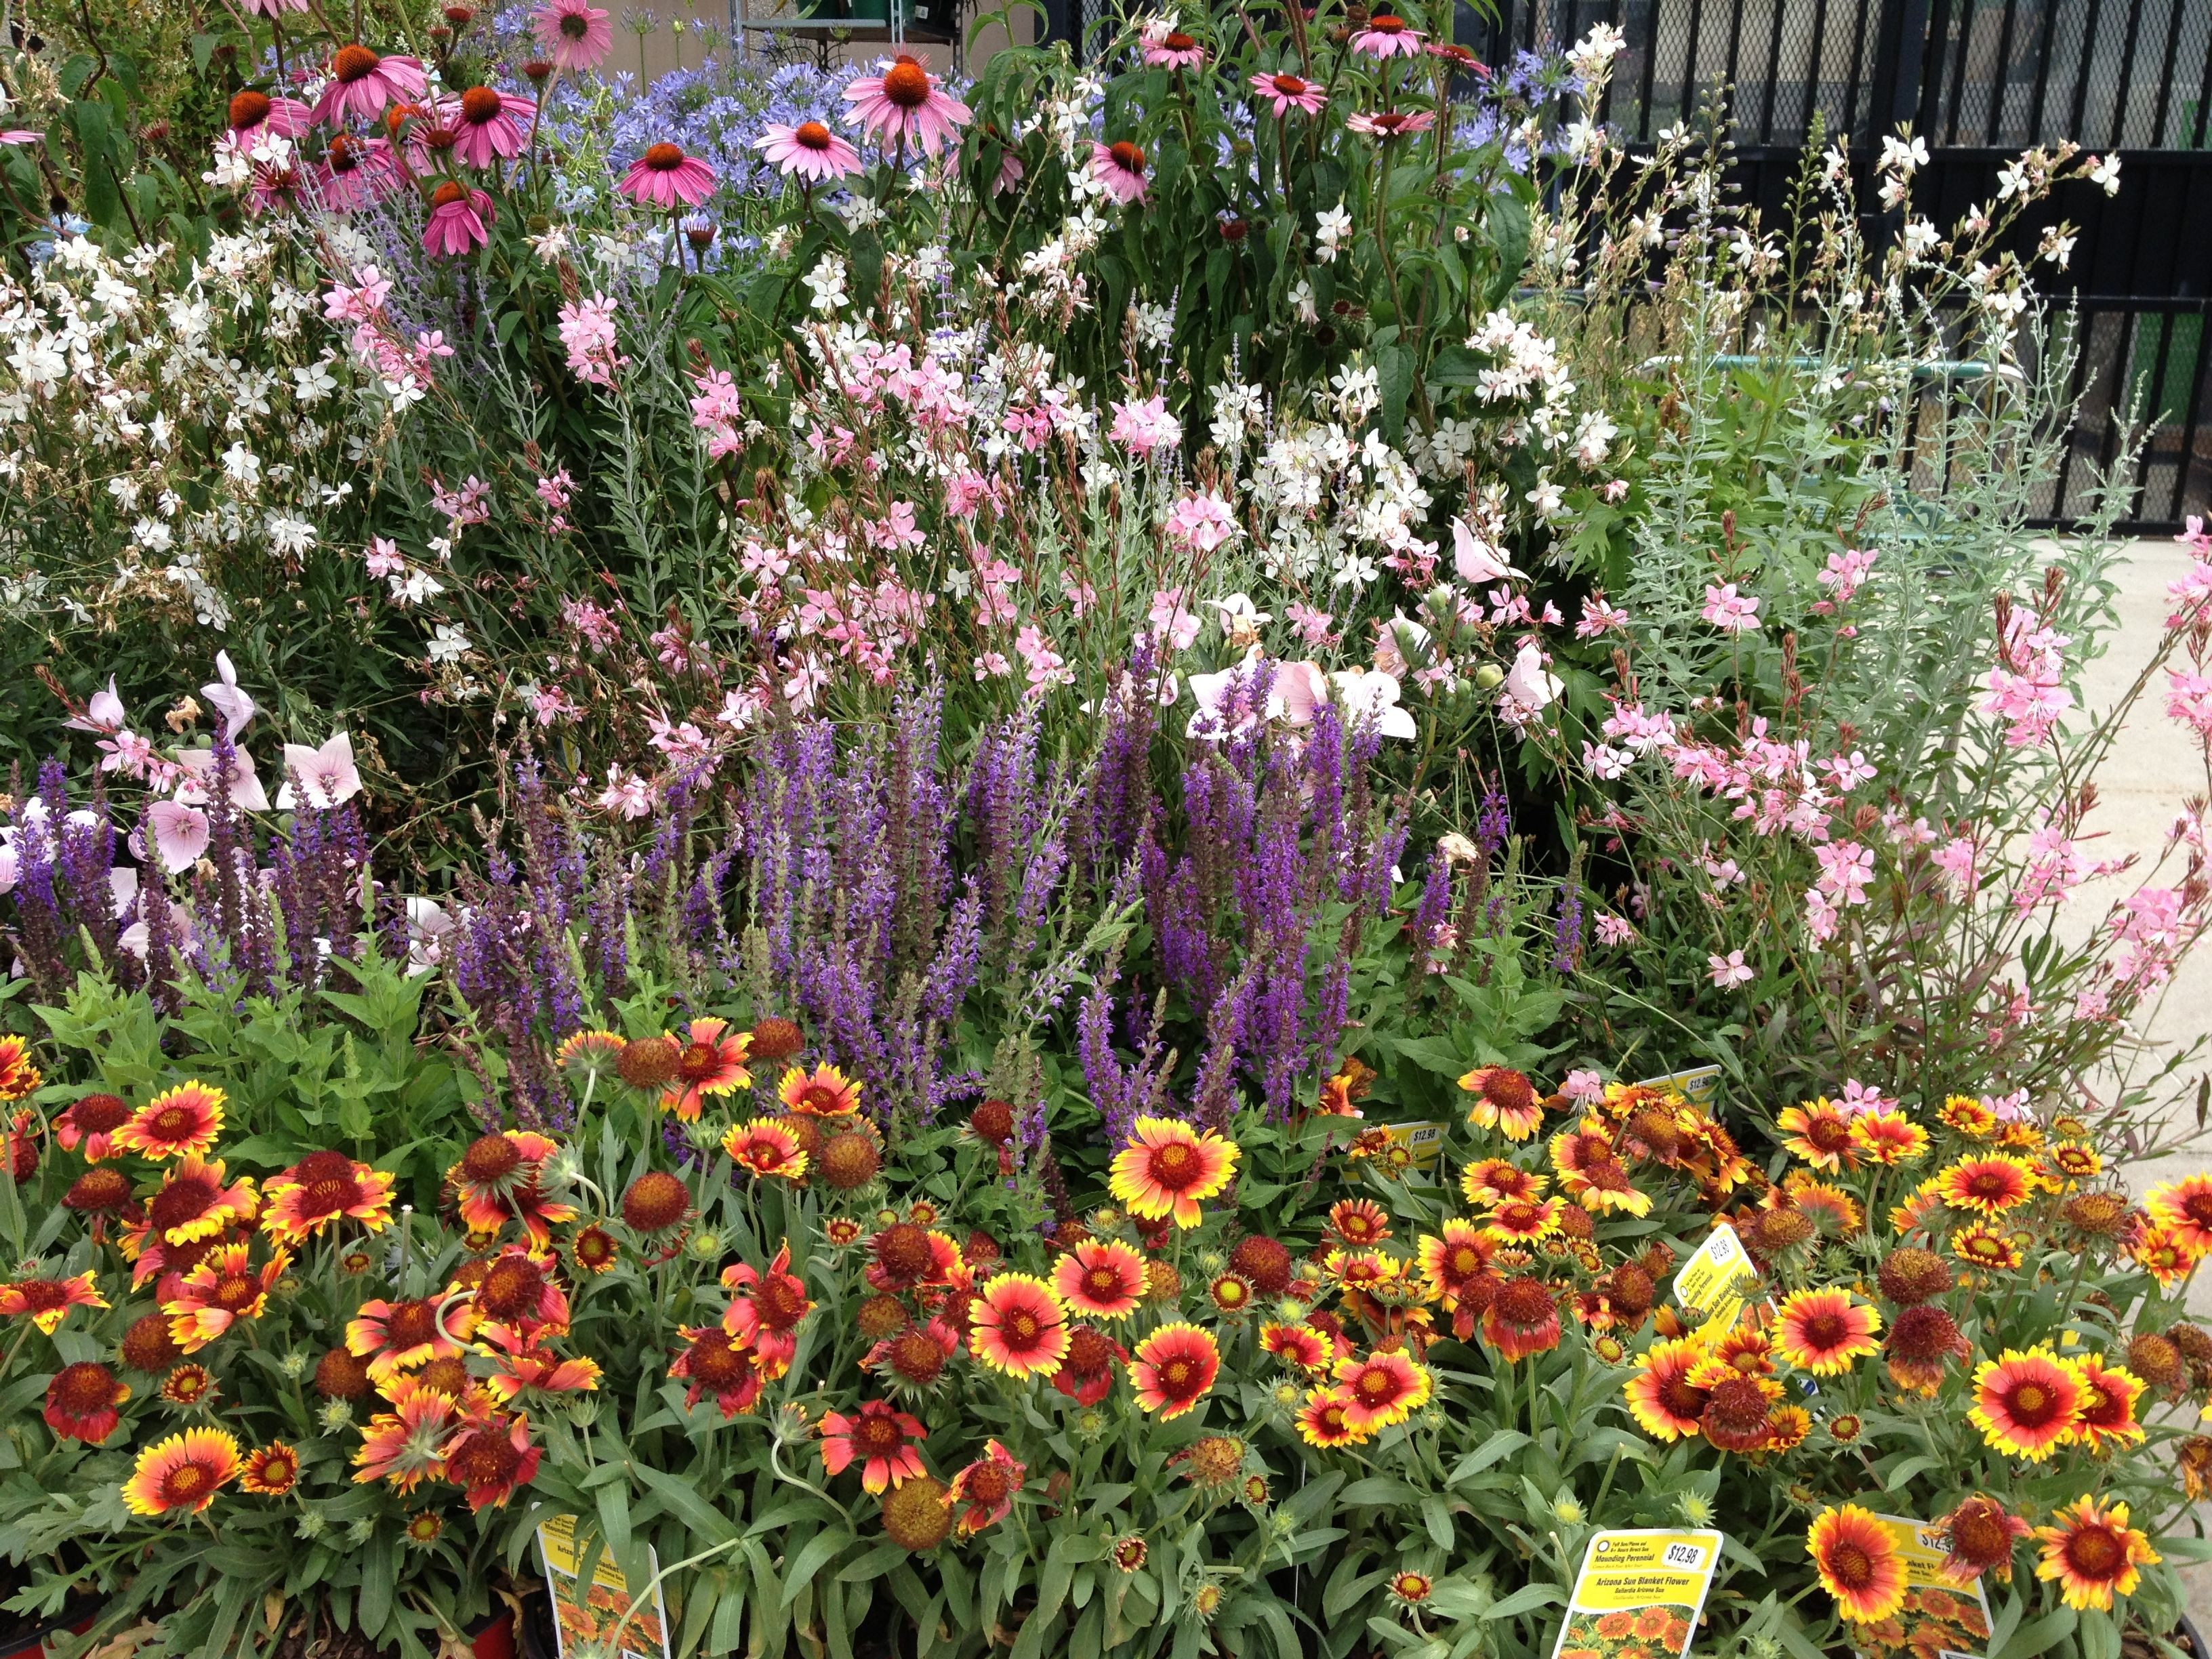 Inspiration Front to Back Blanket Flower orange Salvia Purple Pink Guara White Guara Pink Coneflower Blue flower in back don t know name